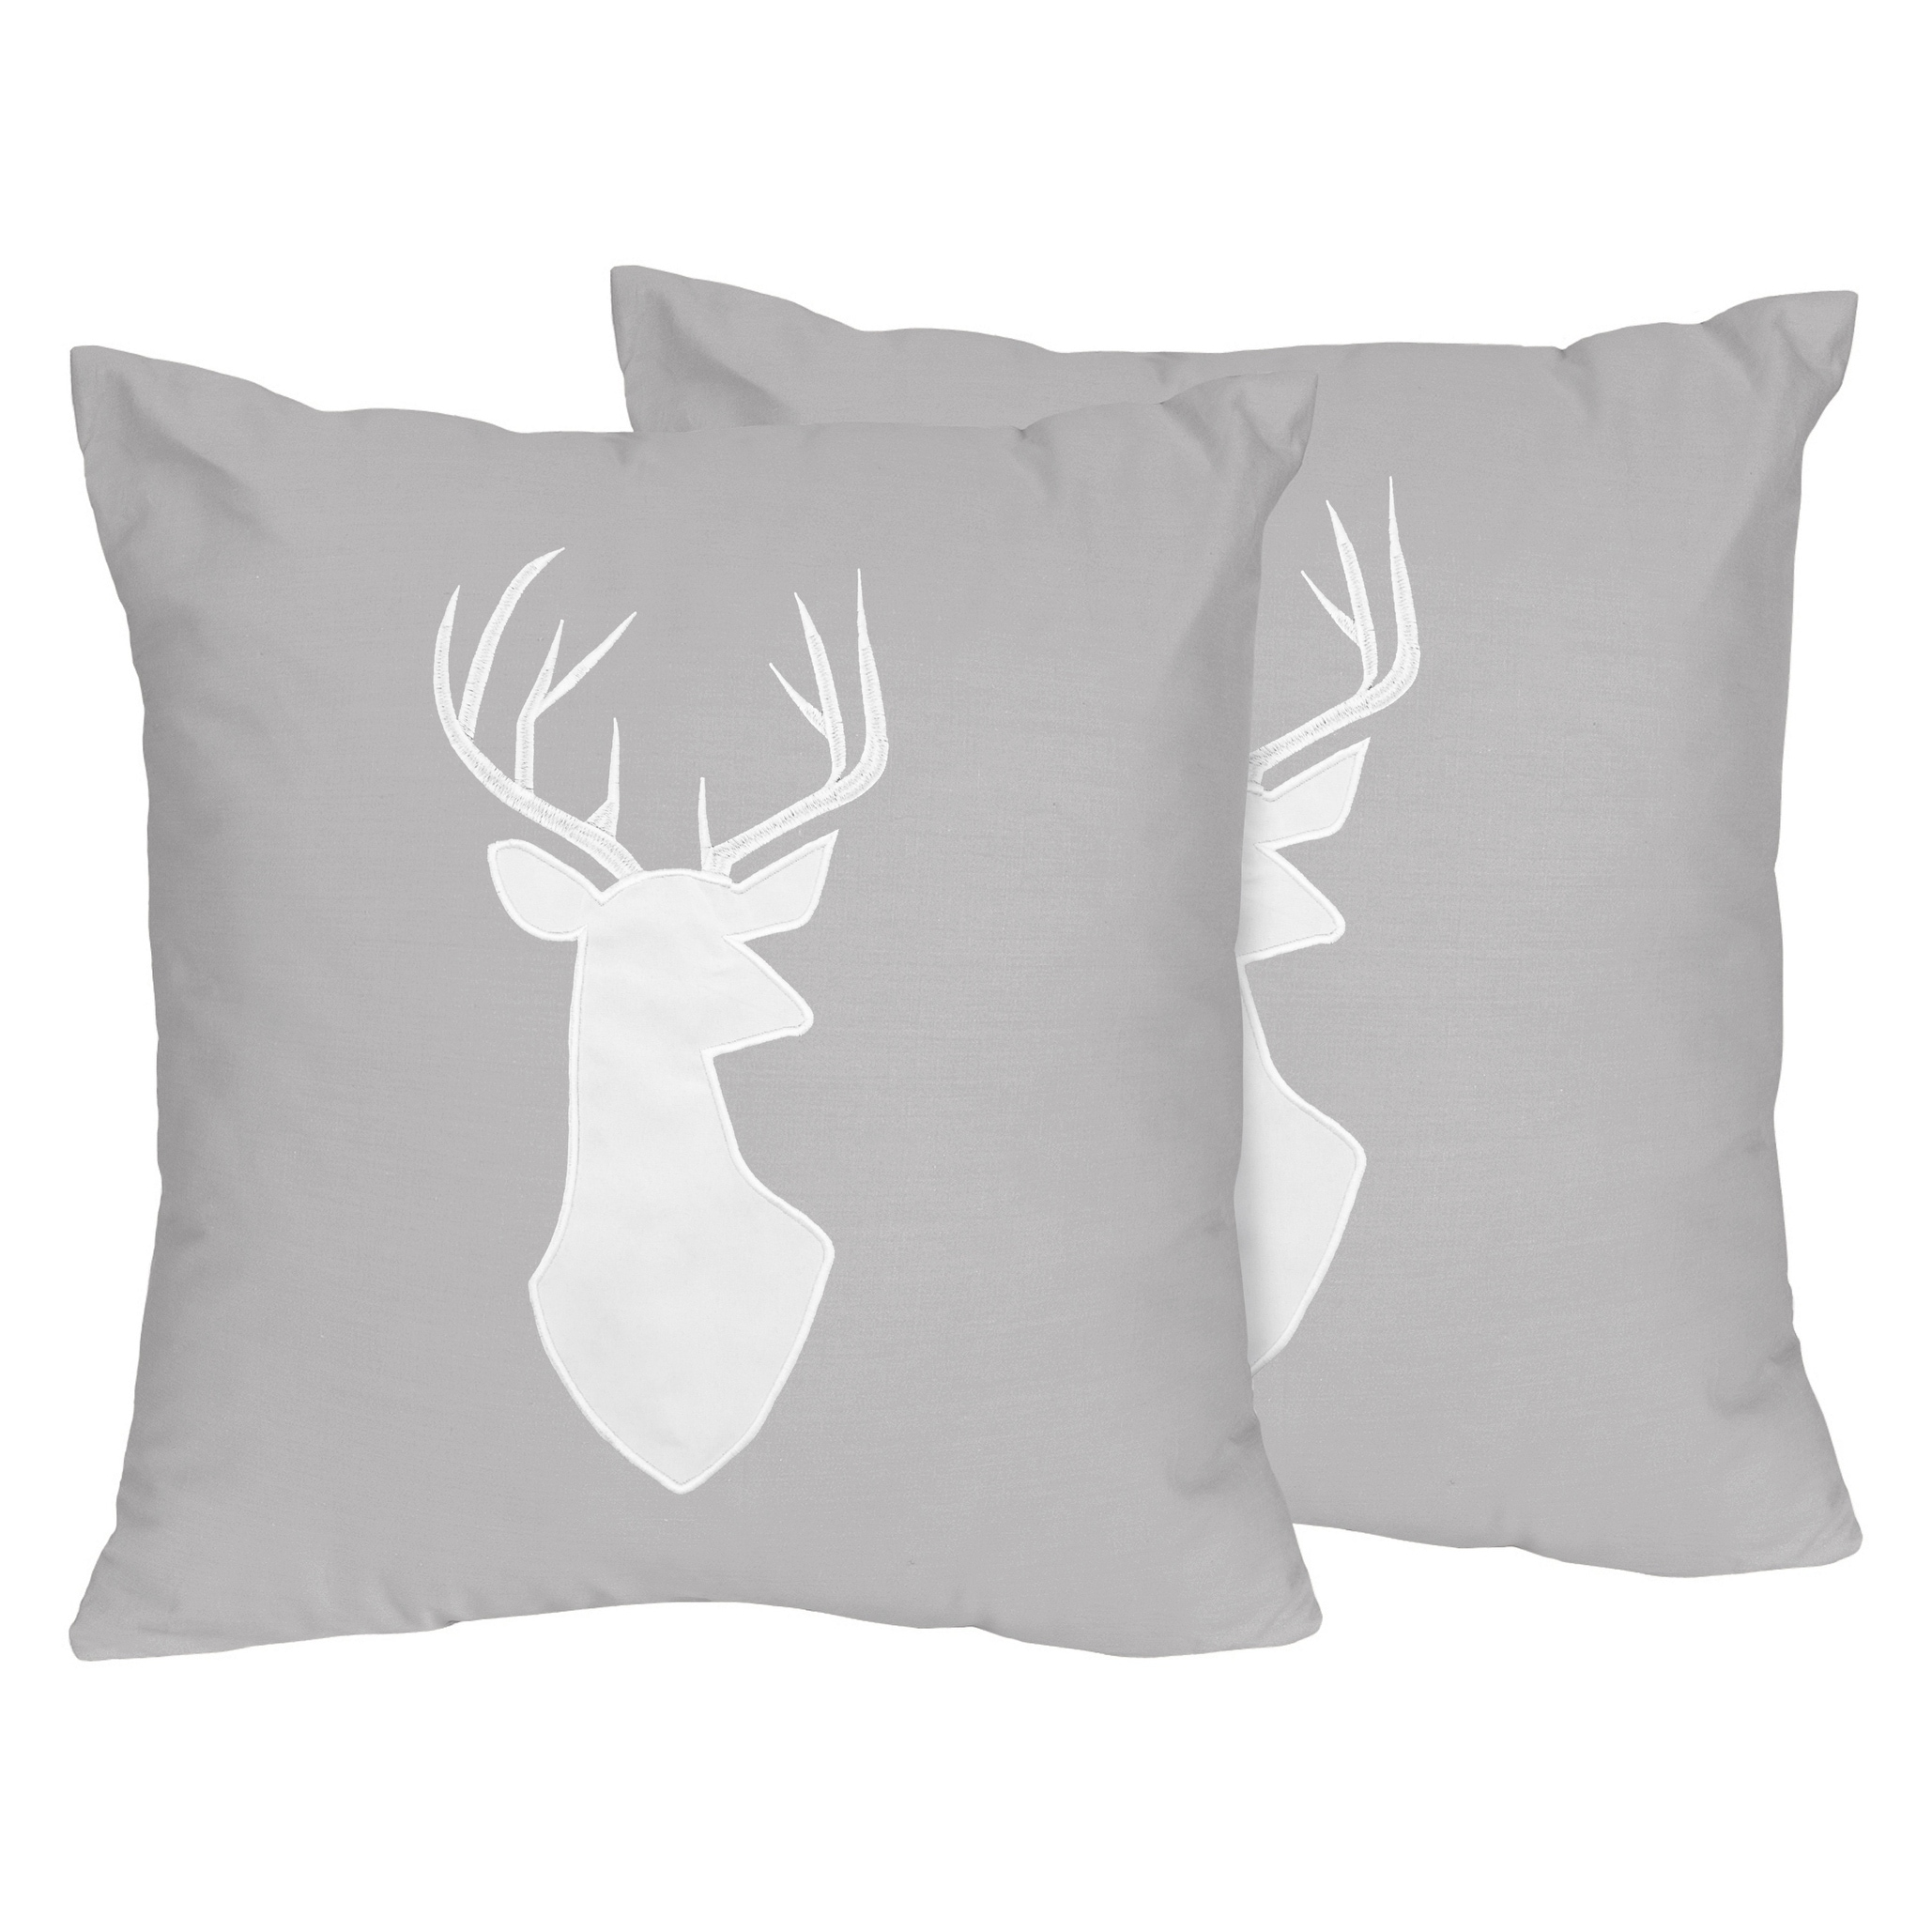 Sweet Jojo Designs Decorative Accent Throw Pillows for the Grey ...